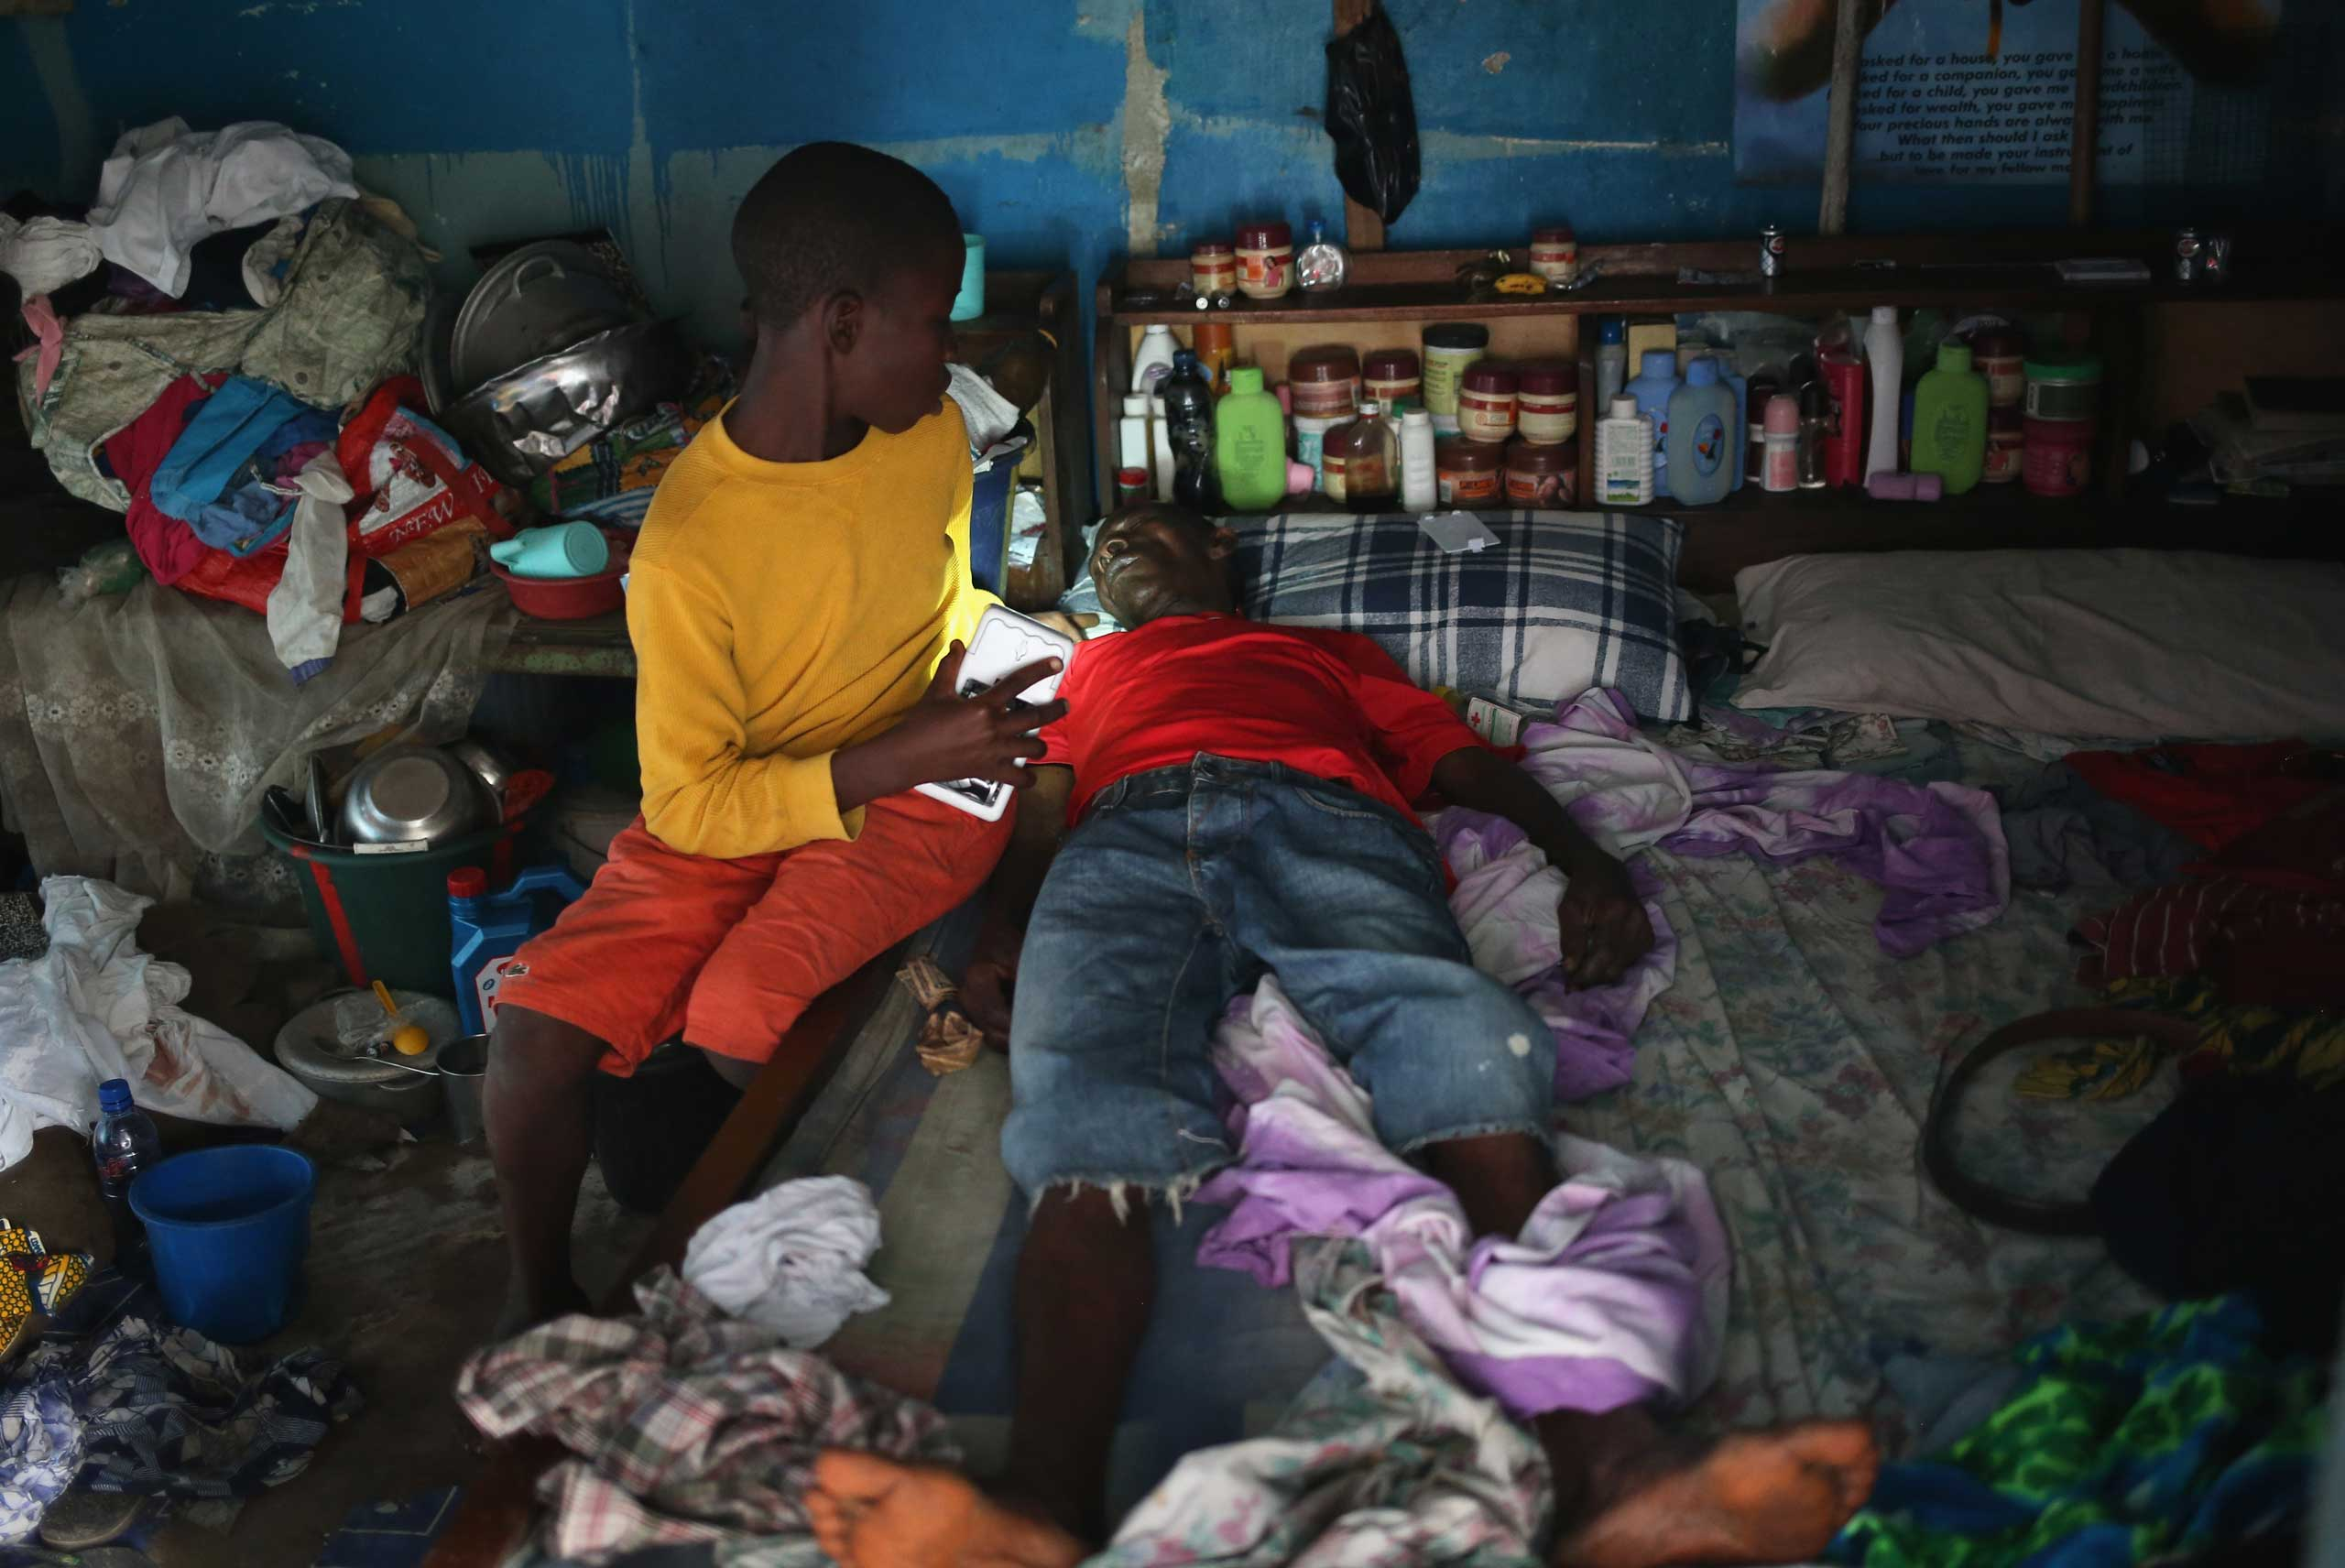 A son tries to prepare his father in their one-room home before they are taken to an Ebola isolation ward on Aug. 15, 2014 in Monrovia.